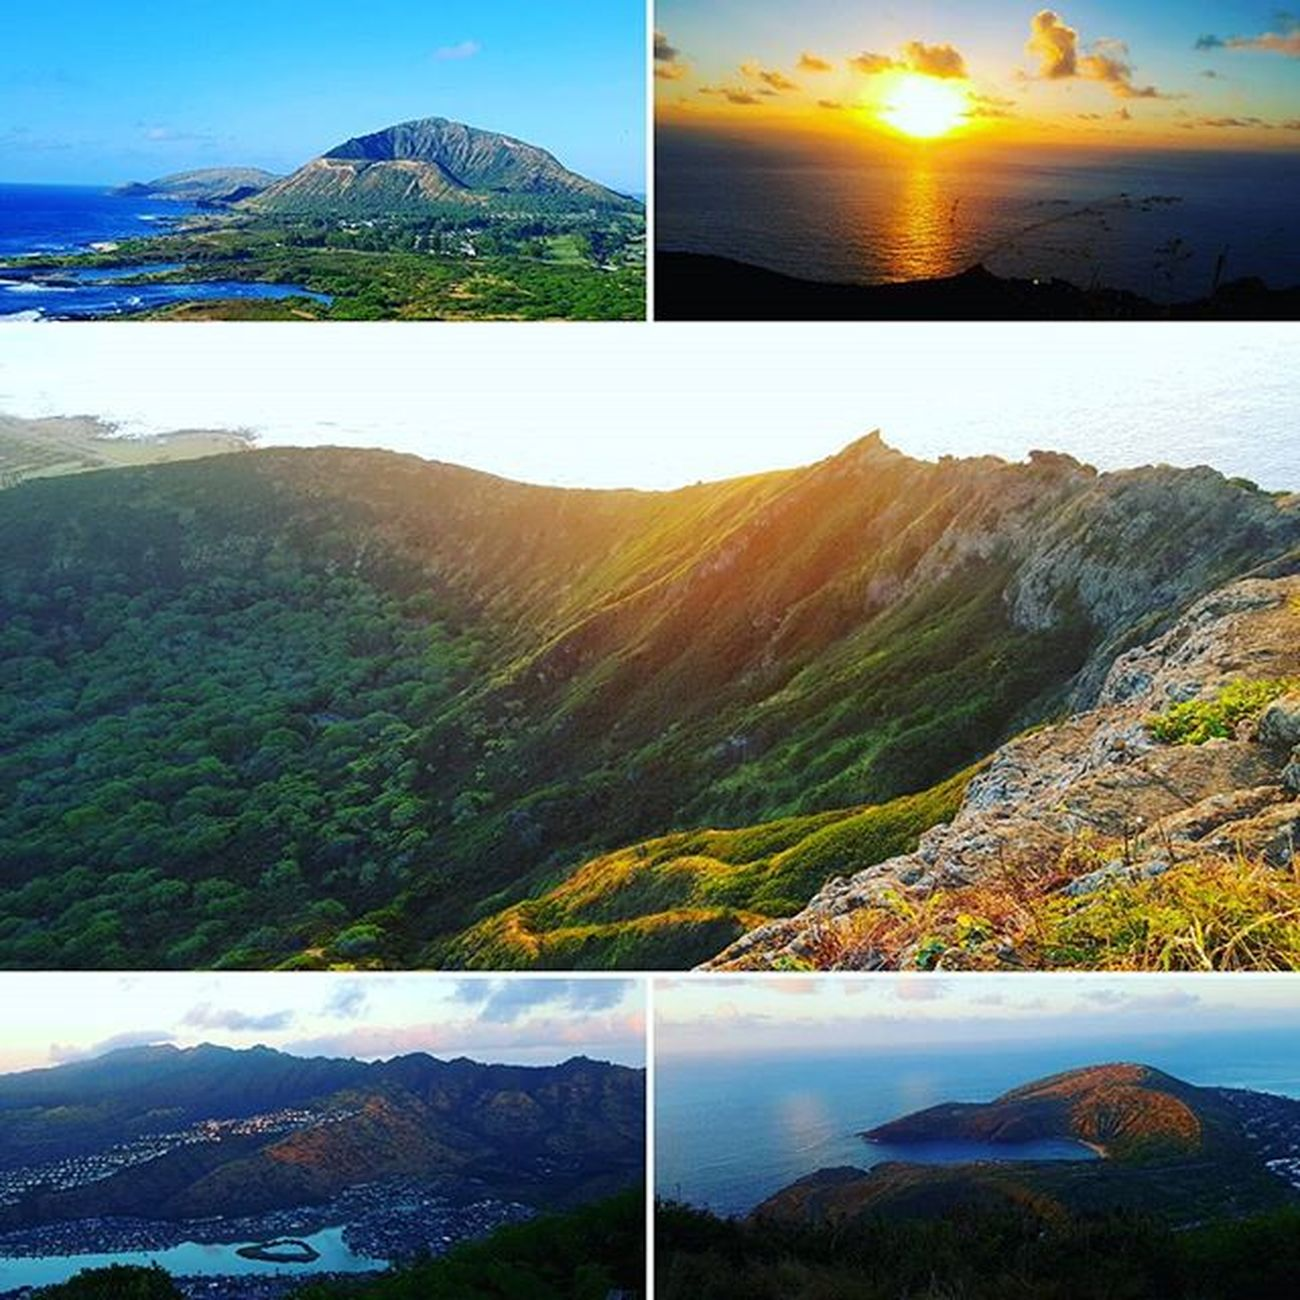 First hike of the year! Kokohead Hawaiikai Hawaii HiLife Hiliving Fitlife Venturehawaii Sunrise Luckywelivehawaii GodIsGood Epichi Niceday Shenanigans Hawaiiunchained